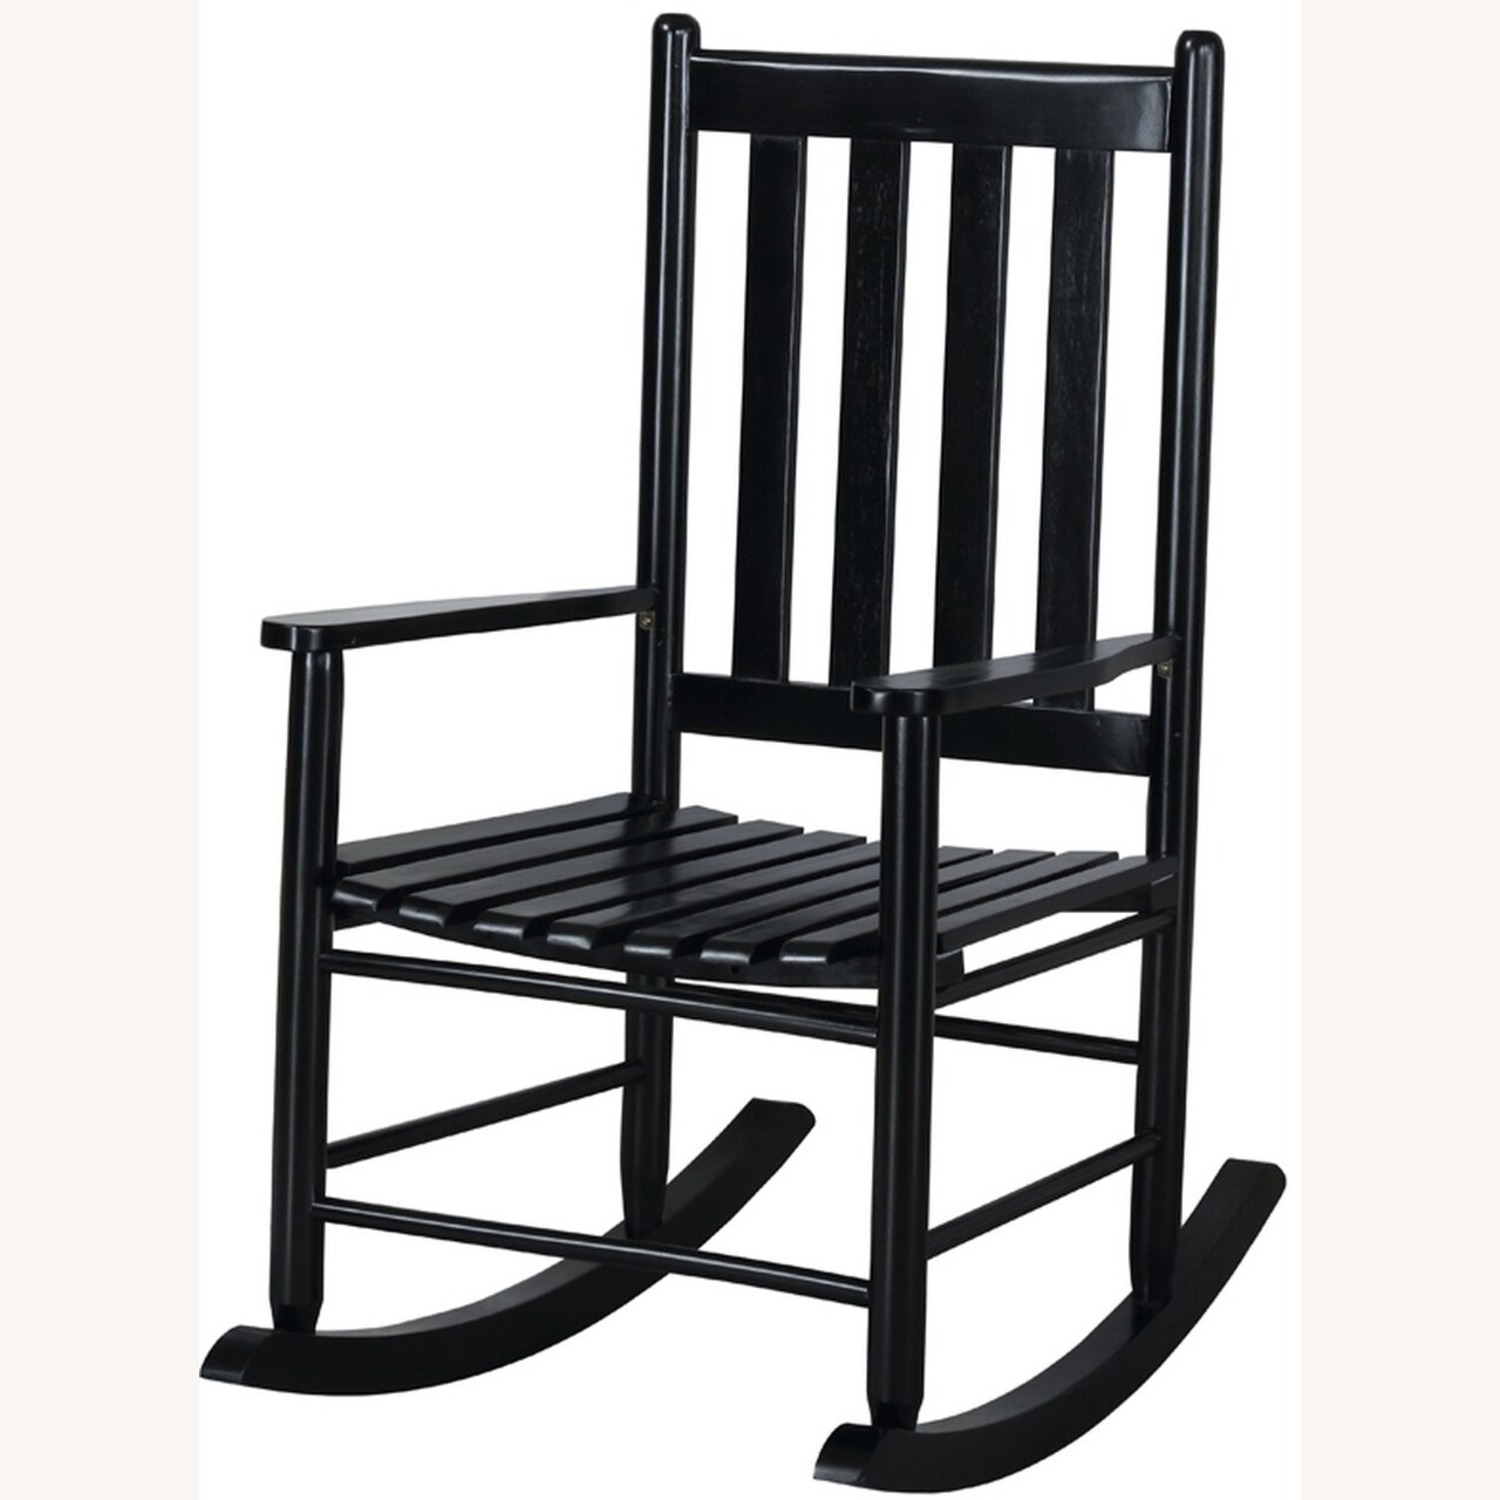 Rocking Chair In Black Solid Acacia Wood Finish - image-1